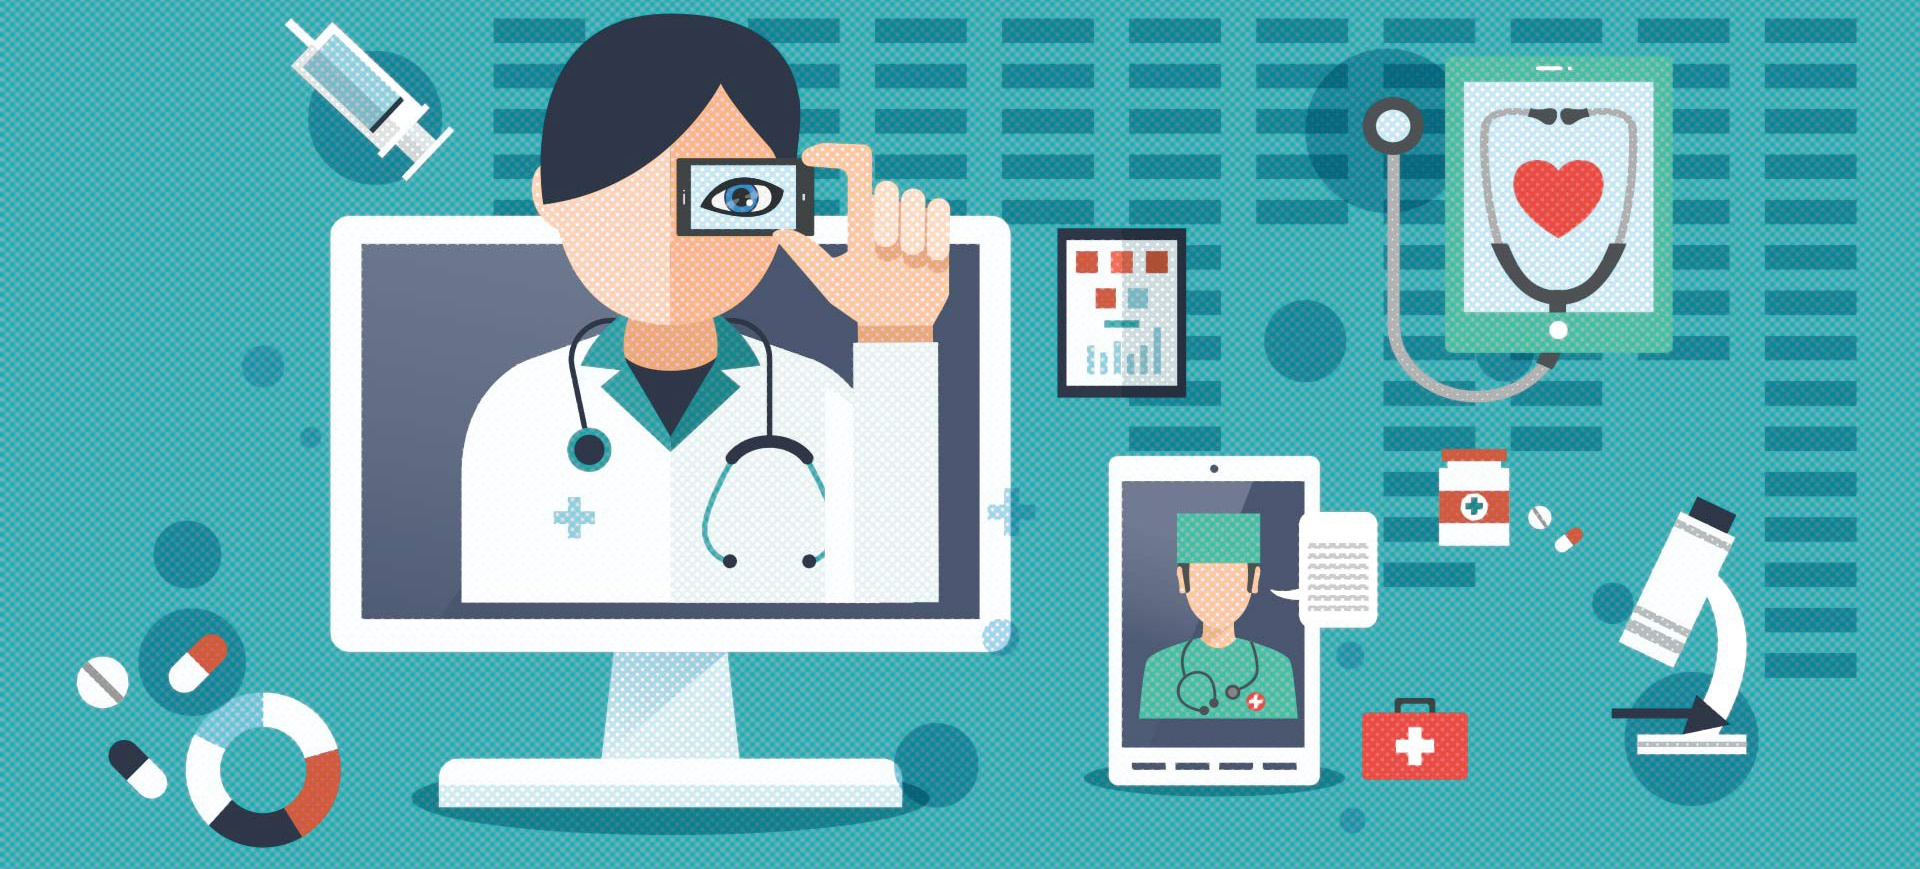 HealthSpaces - Pioneering Telehealth in Mississippi - Lessons for Facilities Leaders